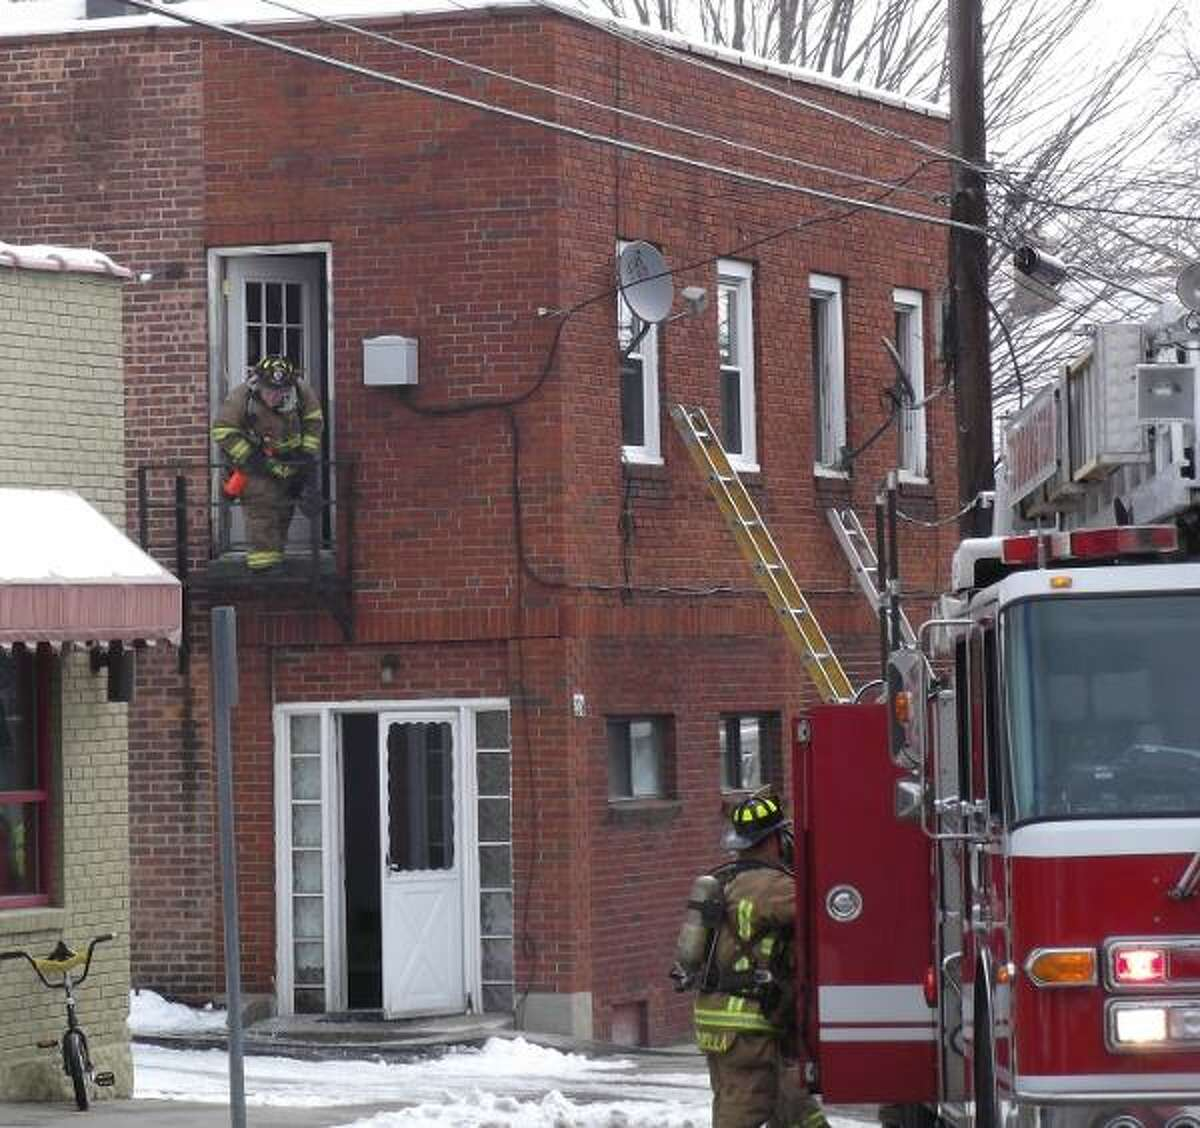 A fireman prepares to go through building to check to make sure the fire is out.